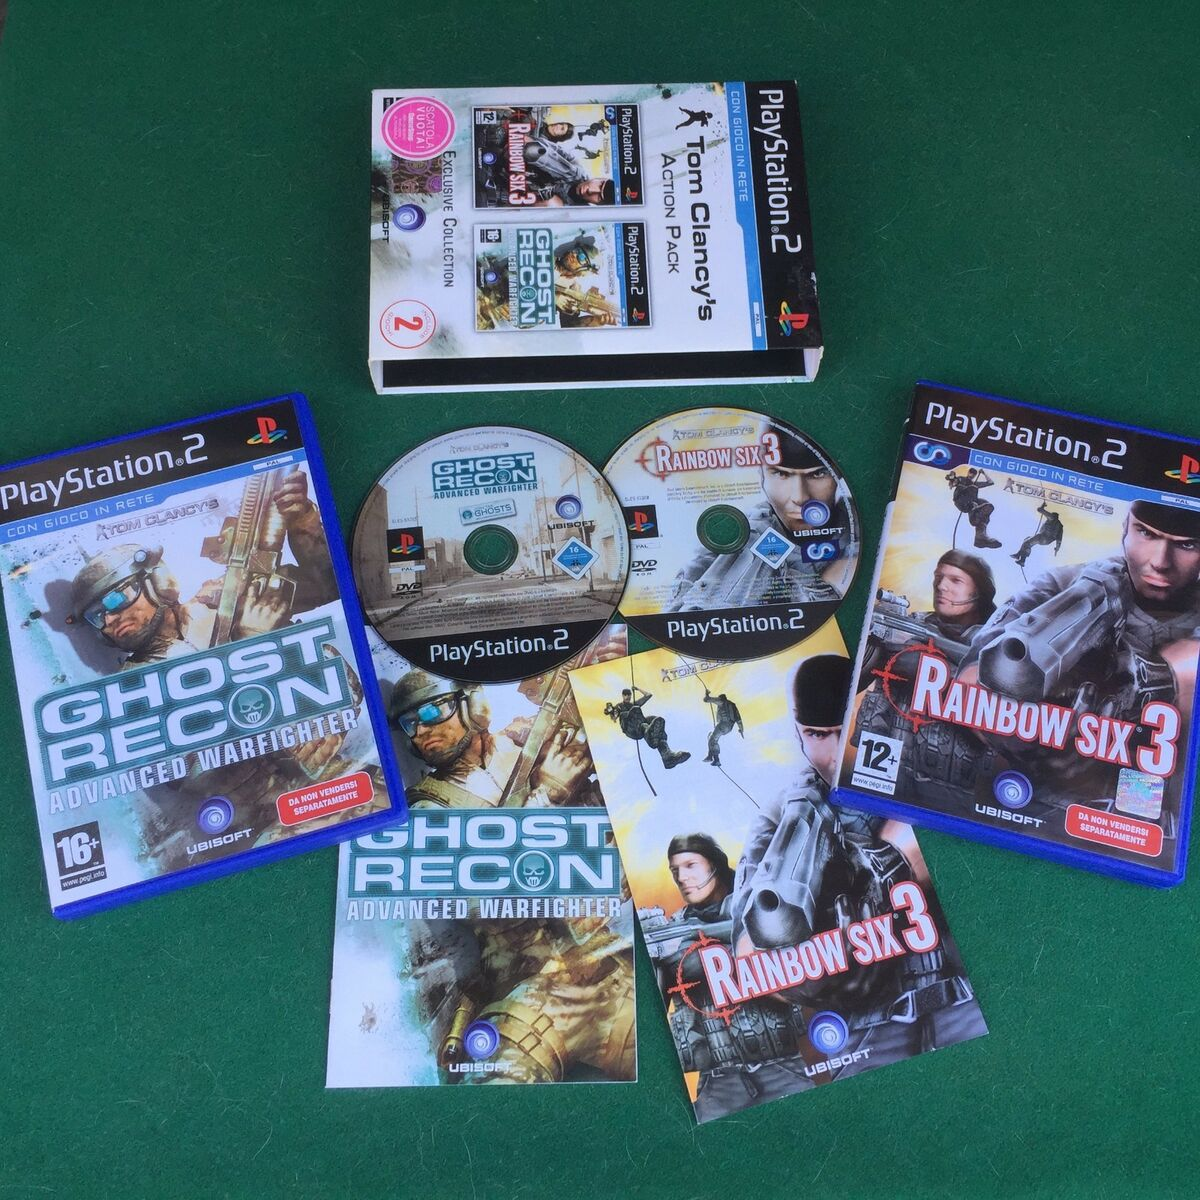 ps2 tom clancy s action pack 2 giochi ita rainbow six 3 ghost playstation Prezzo: € 19,90